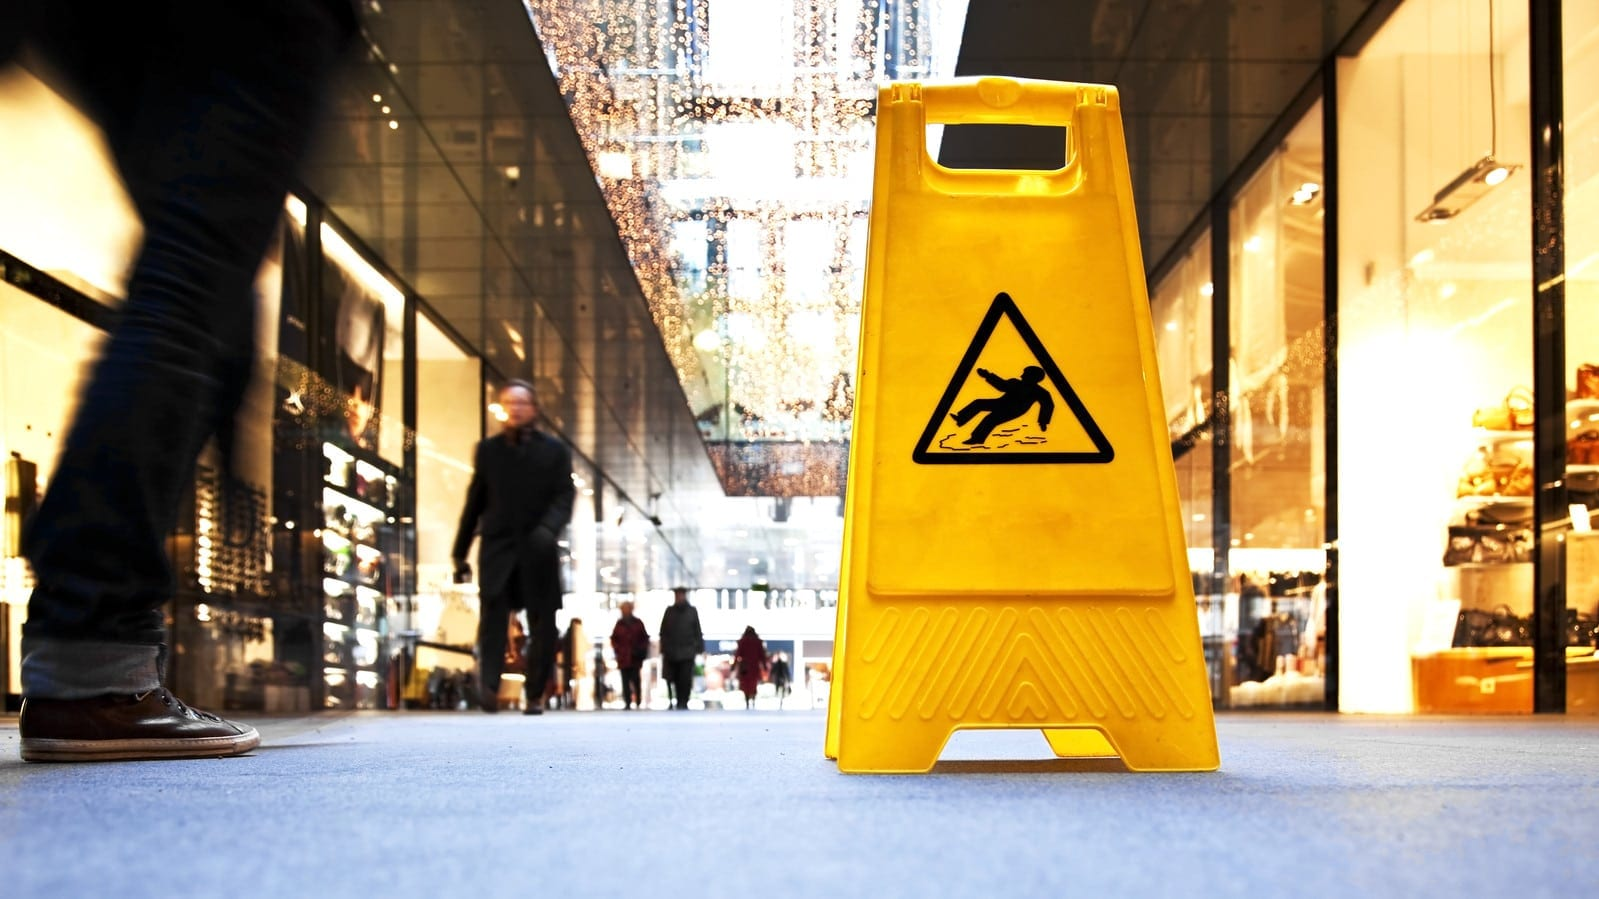 Danger sign in a shopping mall, in the background are motion blurred people.